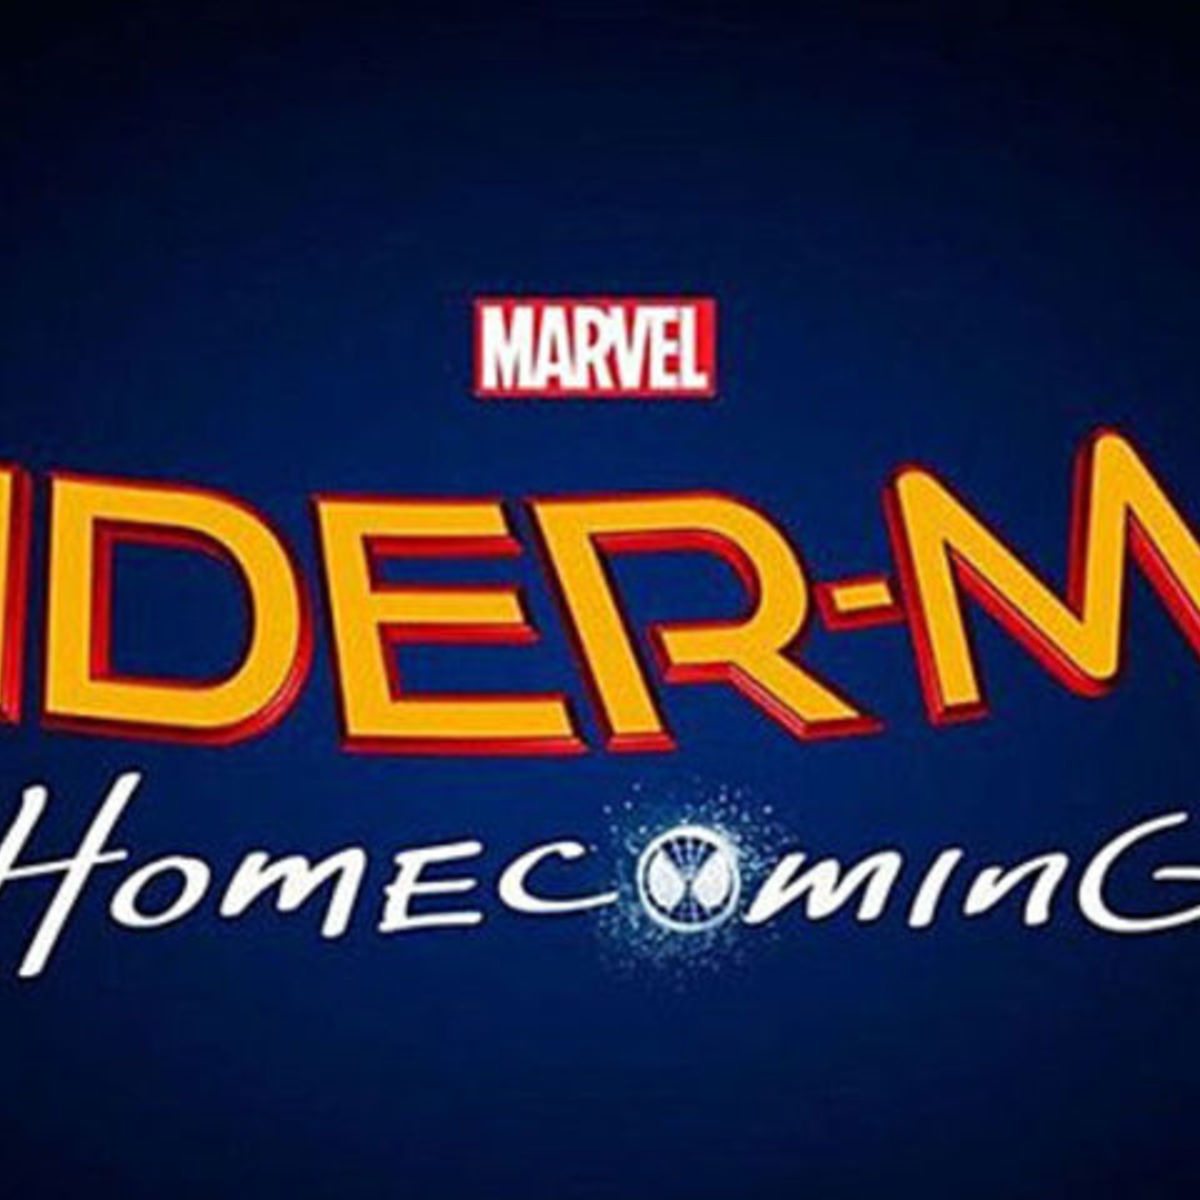 spider-man-homecoming-logo-pic_0_0.jpg